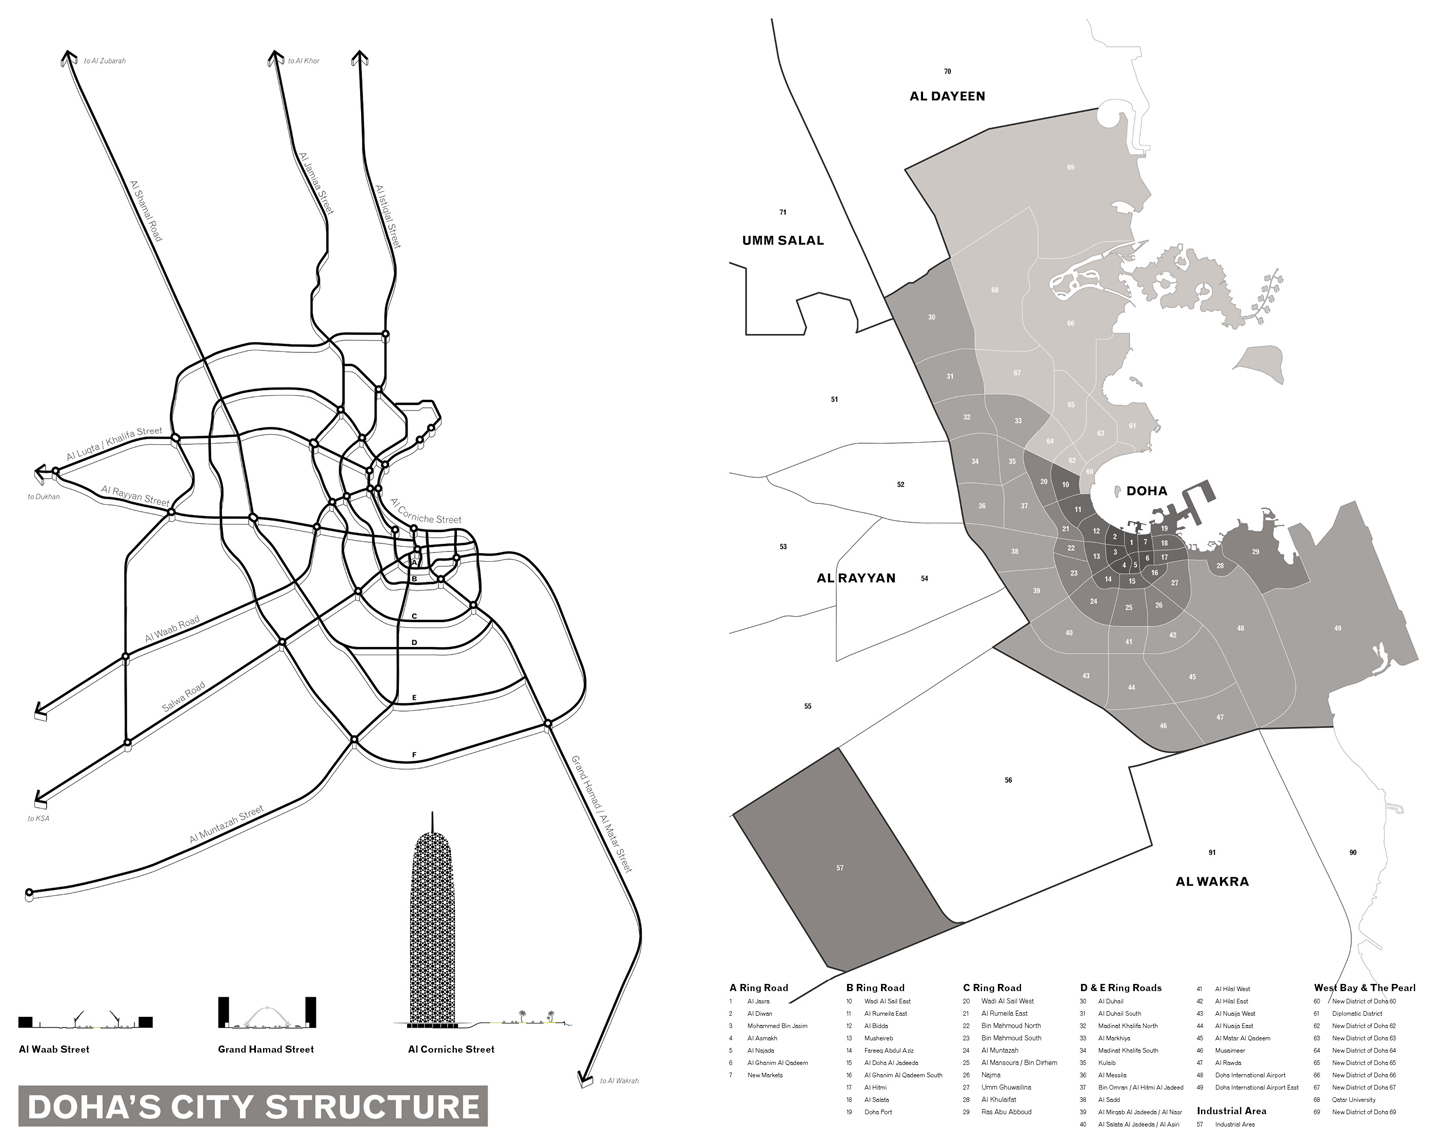 Doha's City Structure